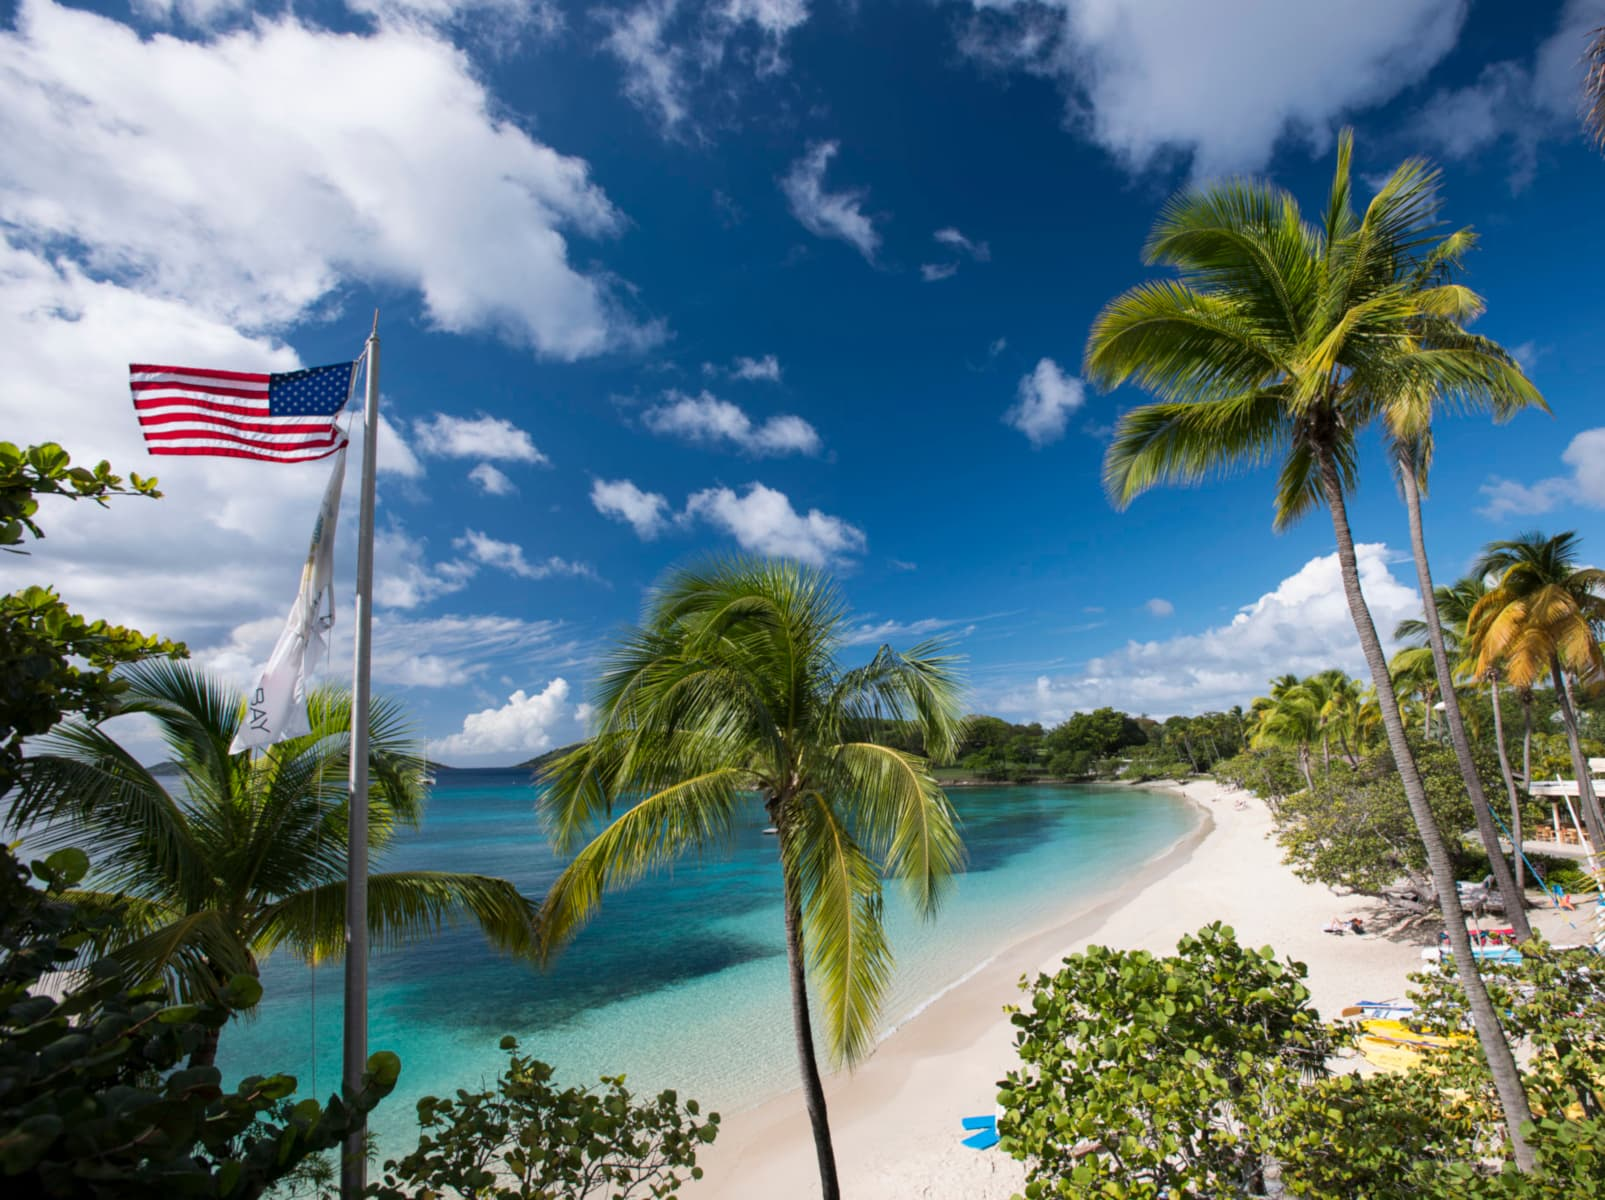 The Caneel Bay Resort - one of the best tennis resorts for your tennis holidays in U.S. Virgin Islands